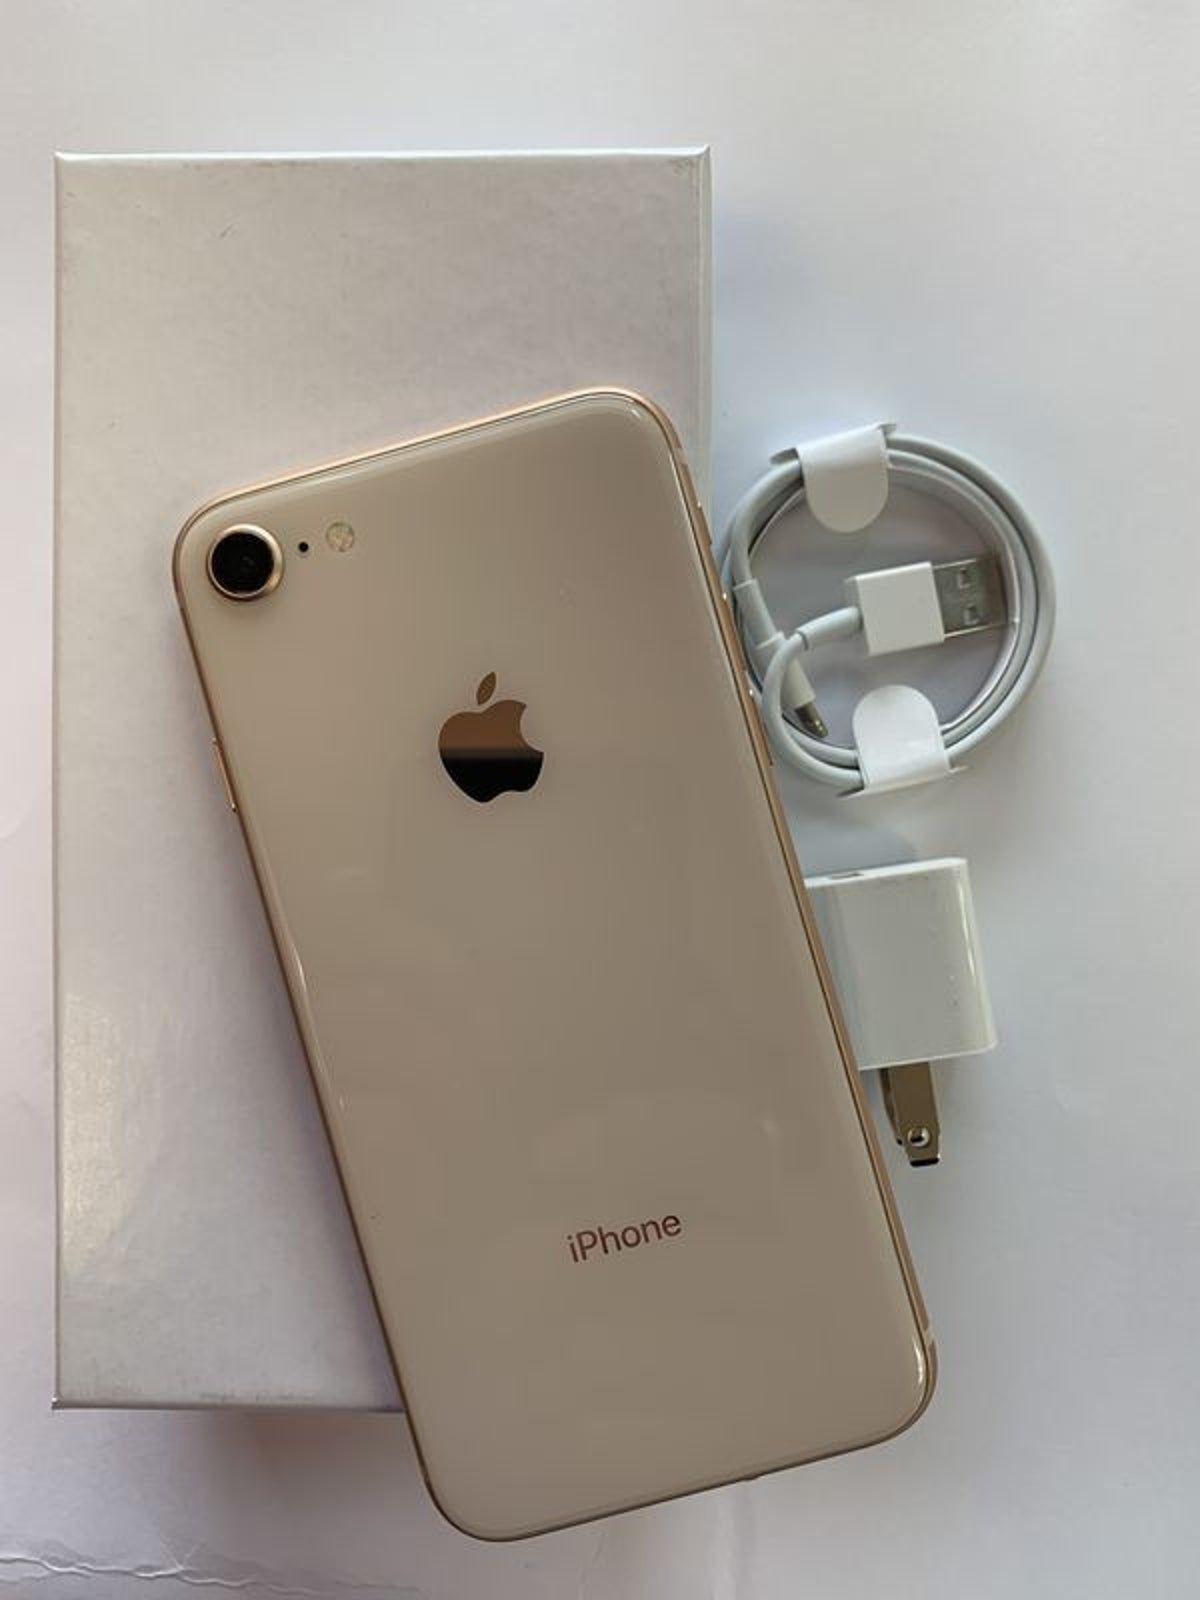 Apple Iphone 8 Gold 64gb T Mobile Iphone Apple Iphone Iphone 8